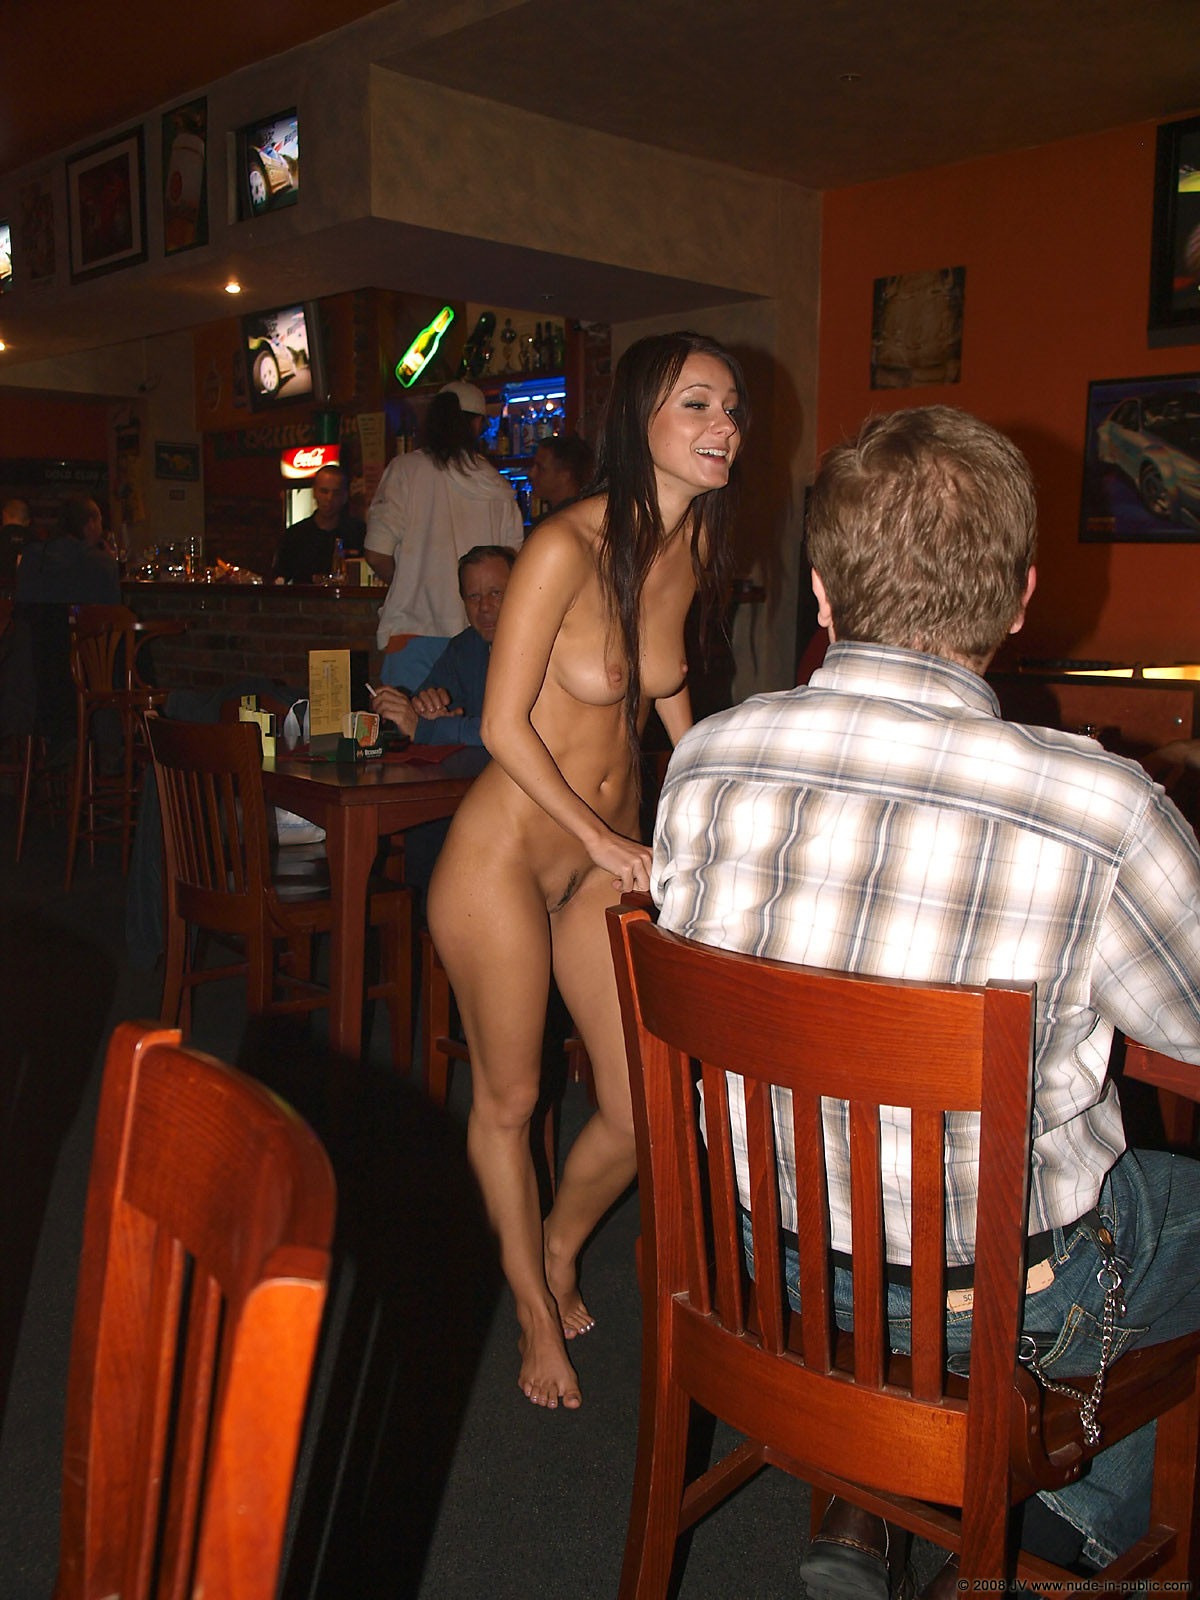 melisa-pub-beer-bar-girl-nude-in-public-03